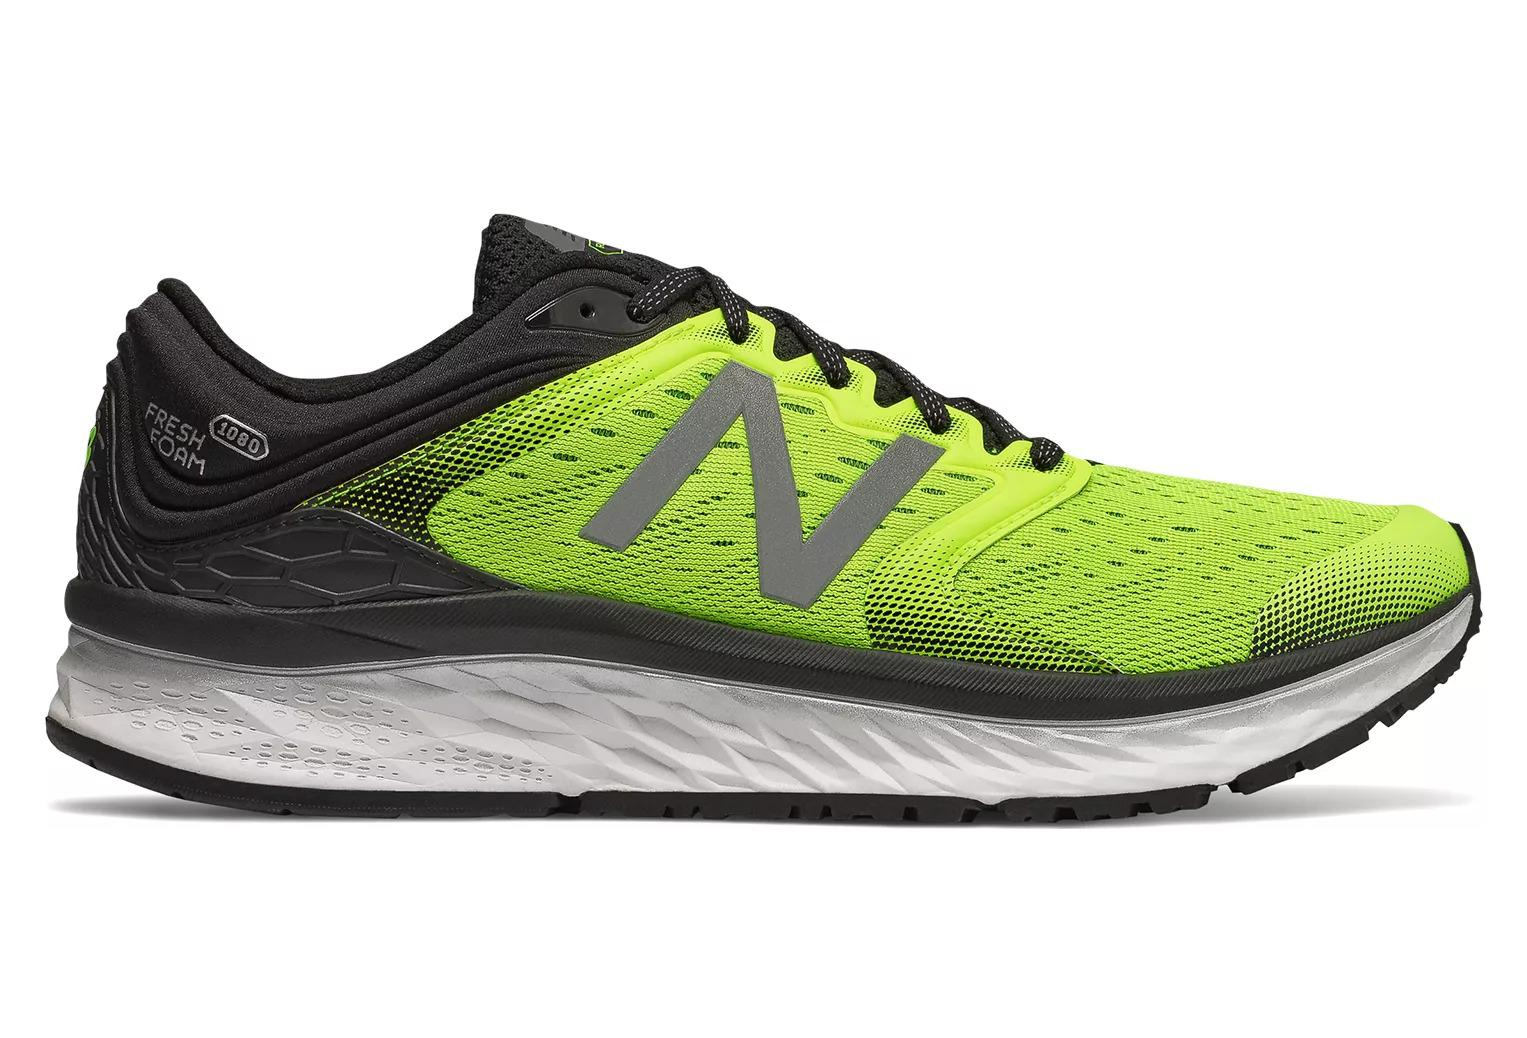 reputable site 57a2f a633c New Balance Fresh Foam 1080 V8 Yellow Black Men